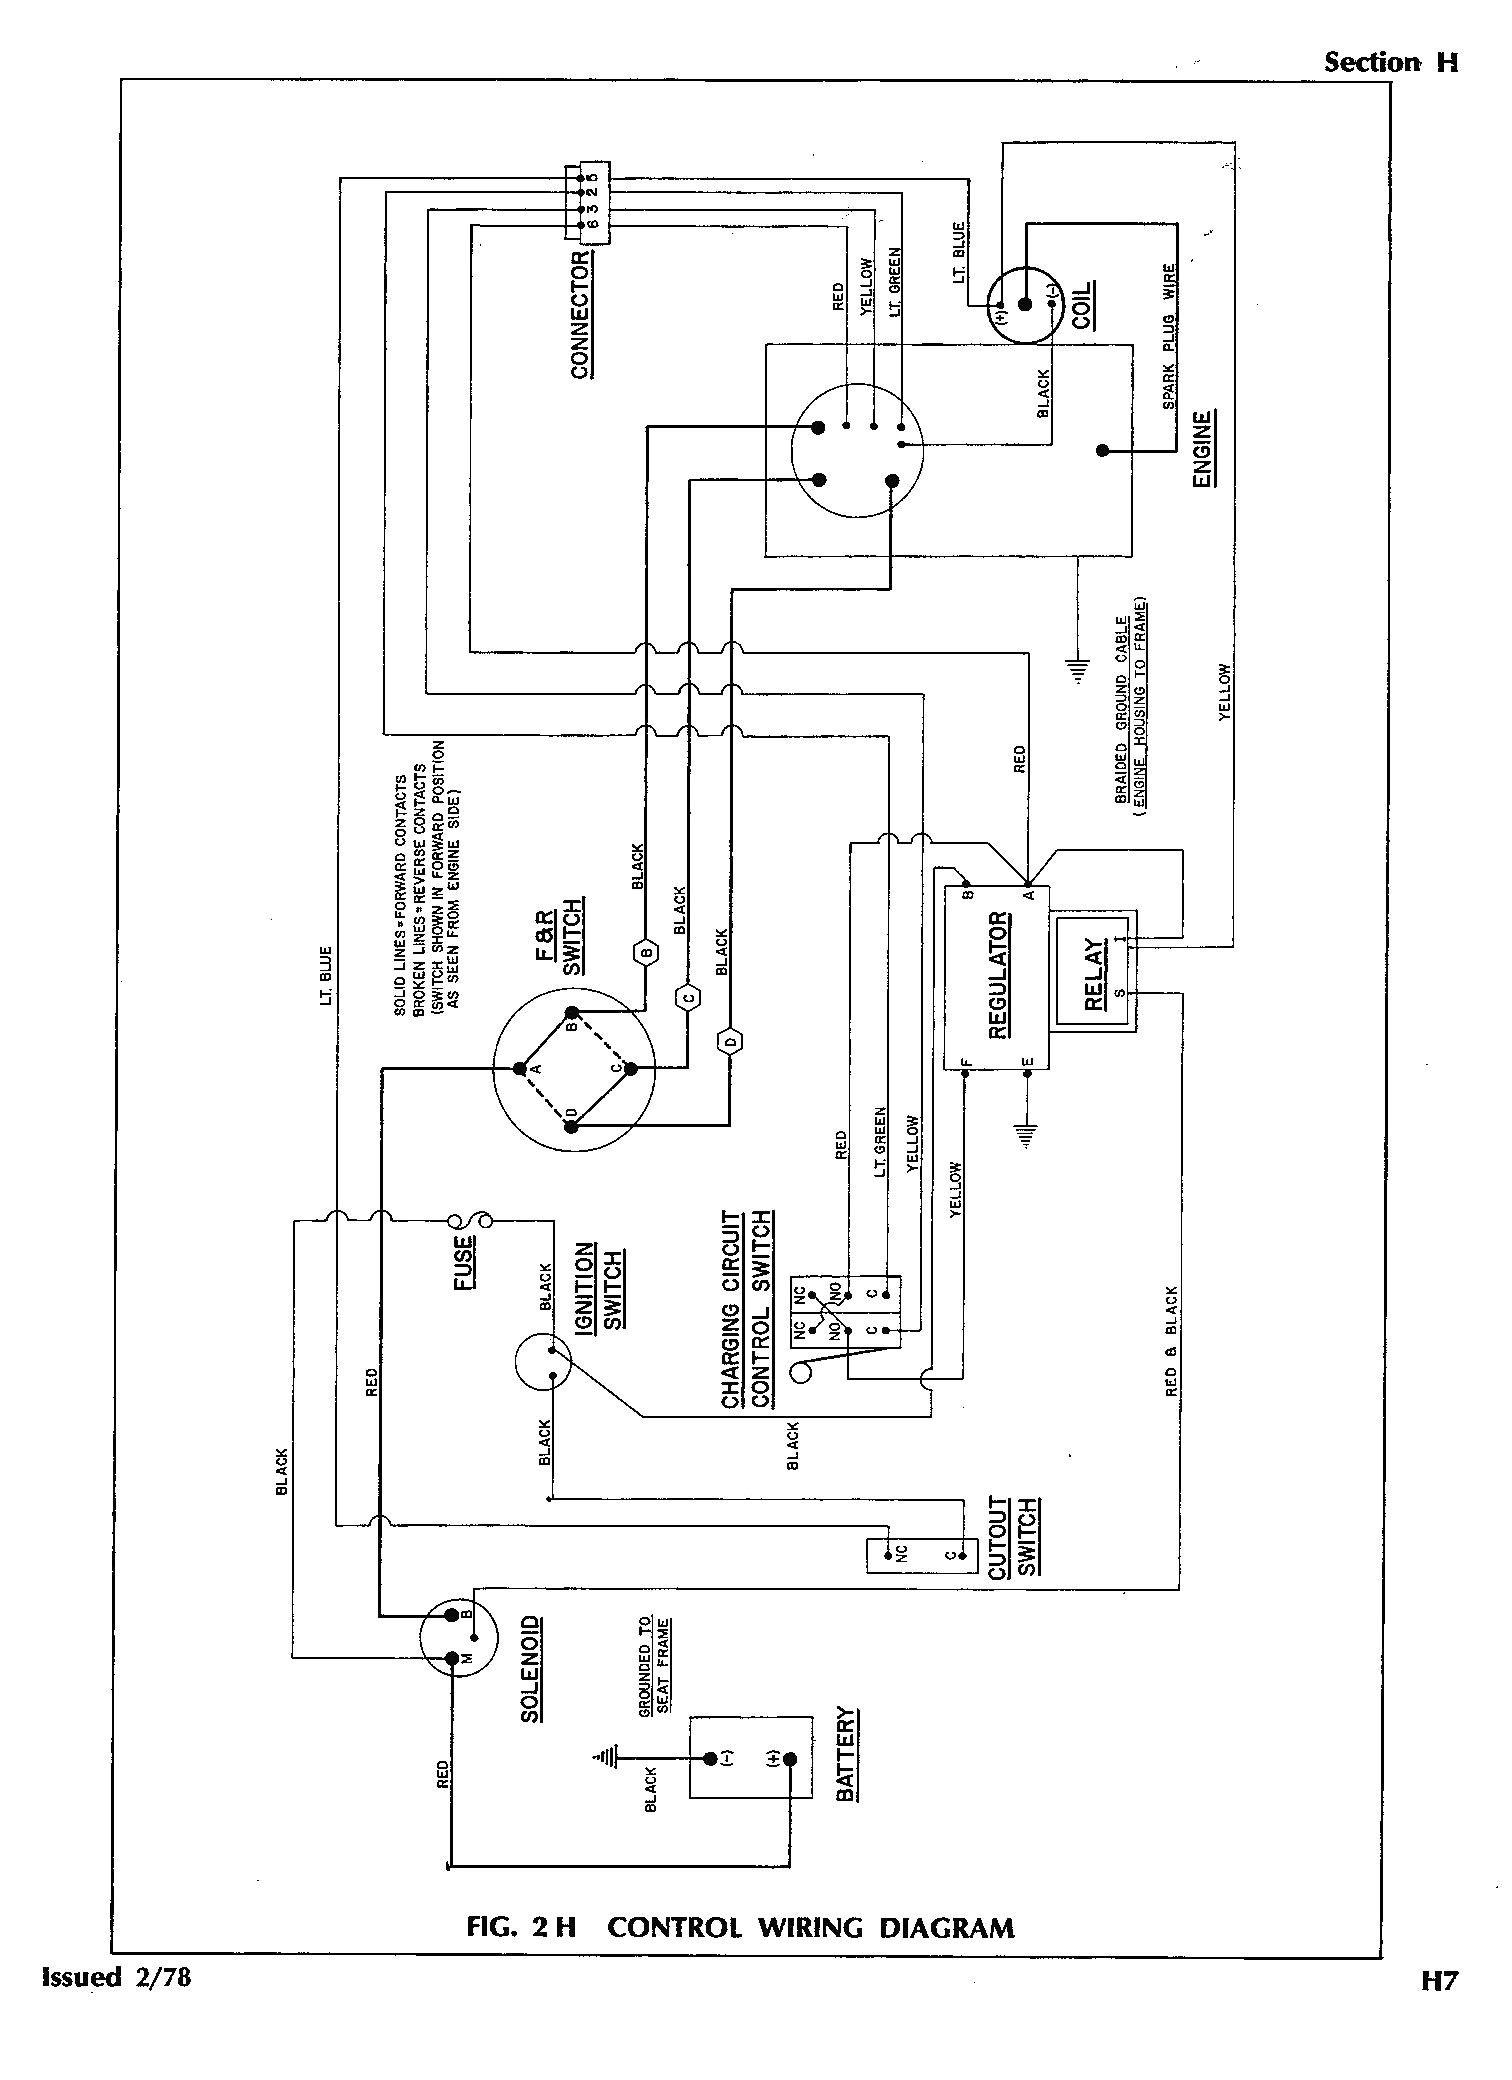 New Wiring Diagram For Club Car Precedent 48 Volt